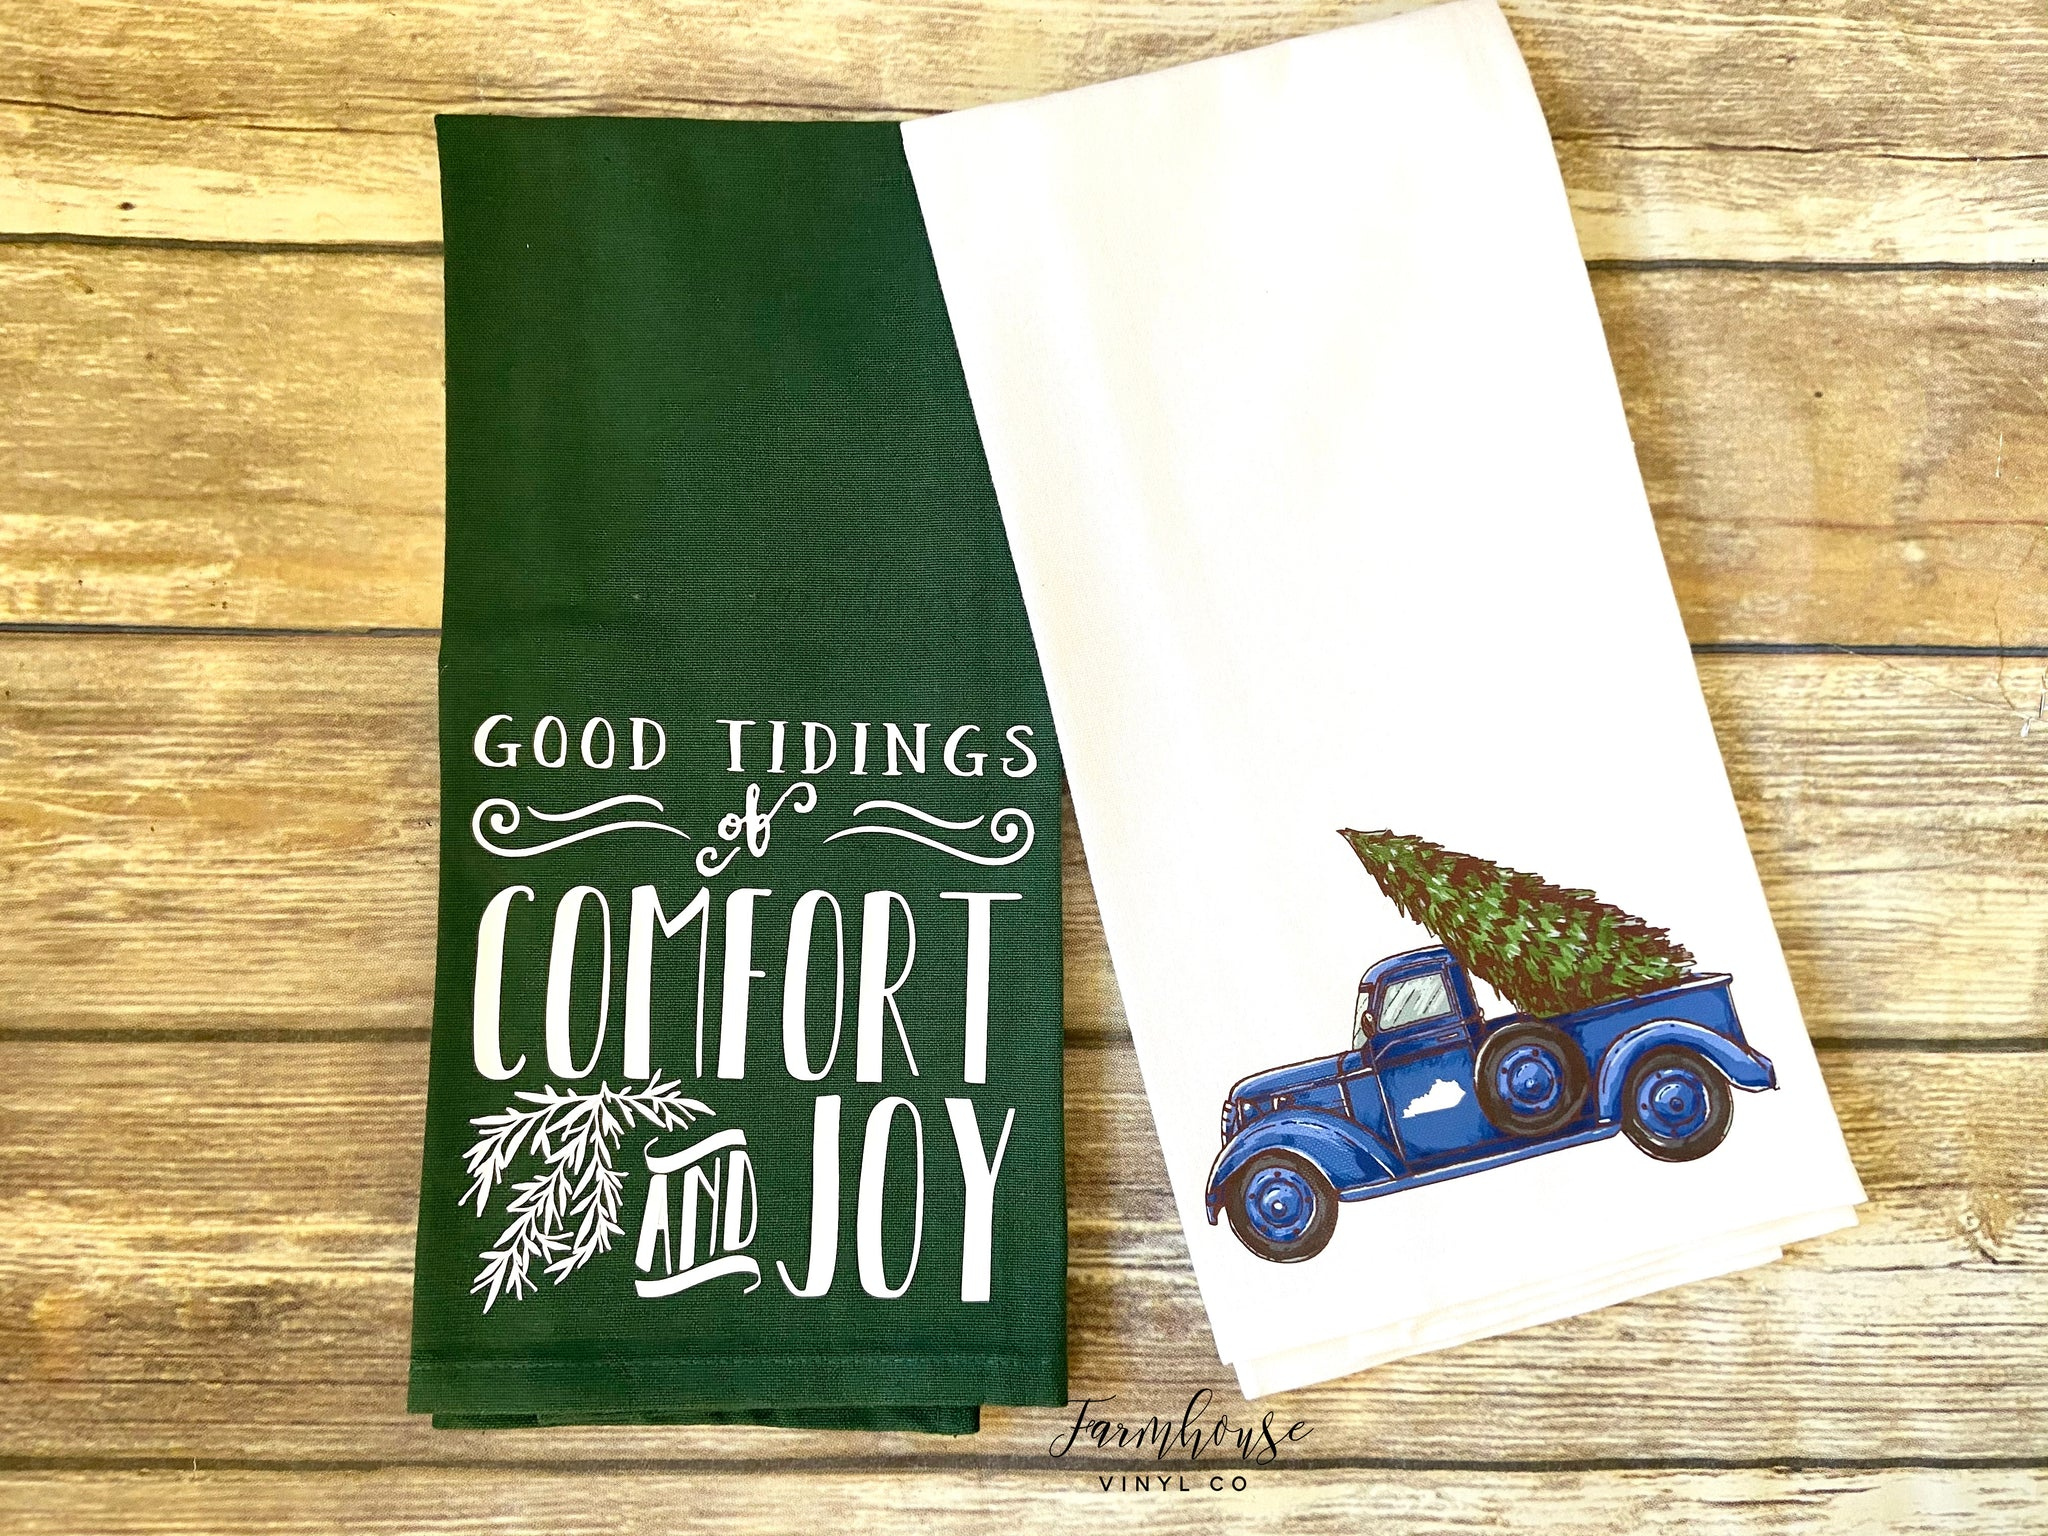 Blue Christmas Truck and Good Tidings of Comfort and Joy Towels